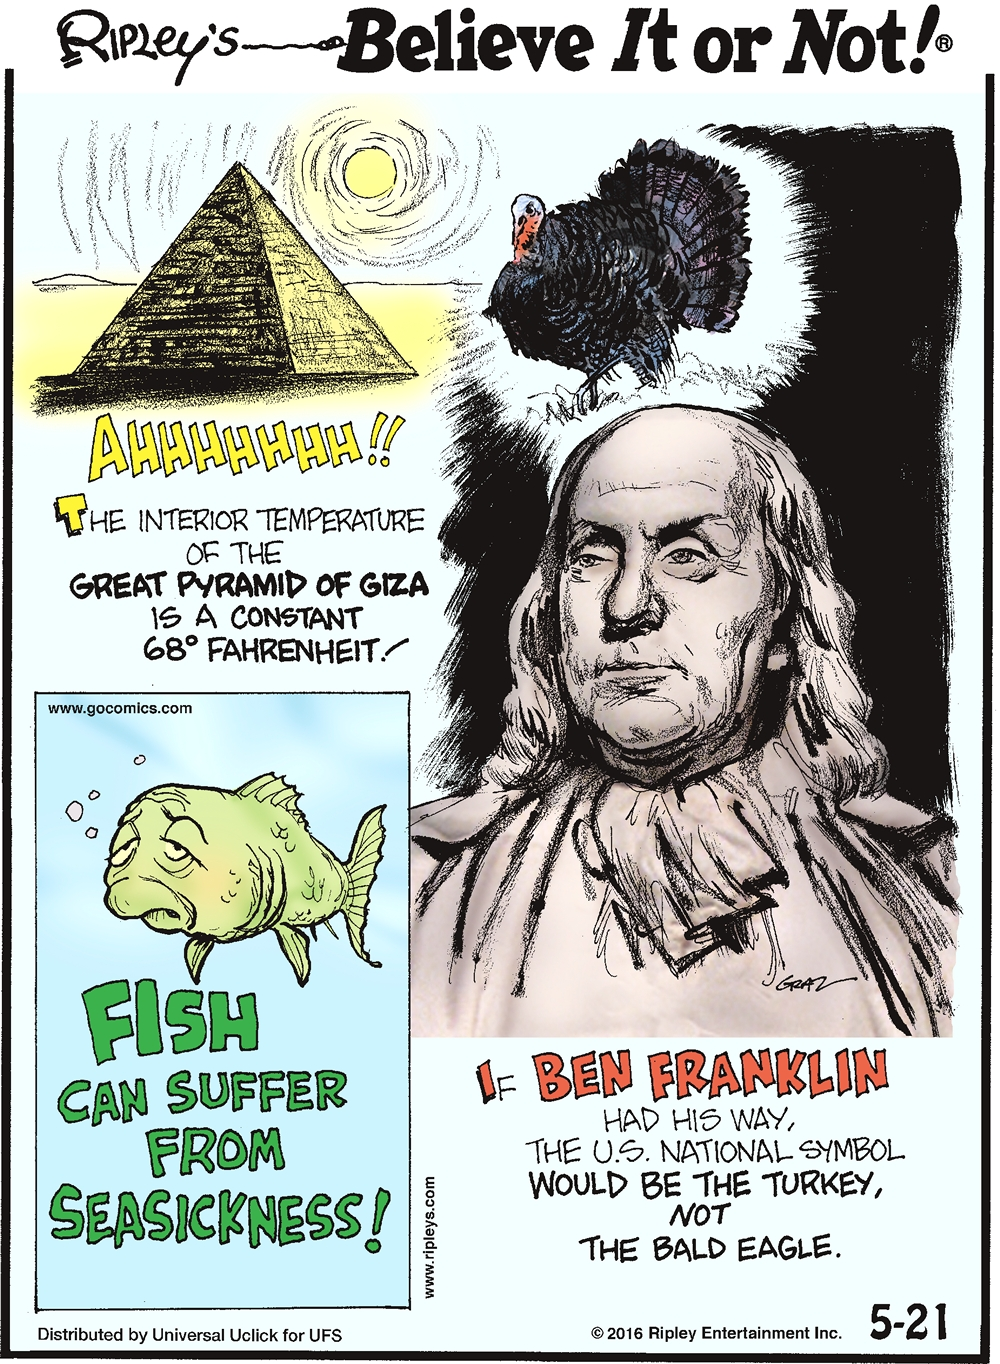 The interior temperature of the great Pyramid of Giza is a constant 68° Fahrenheit! -------------------- Fish can suffer from seasickness! -------------------- If Ben Franklin had his way, the US national symbol would be the turkey, not the eagle.